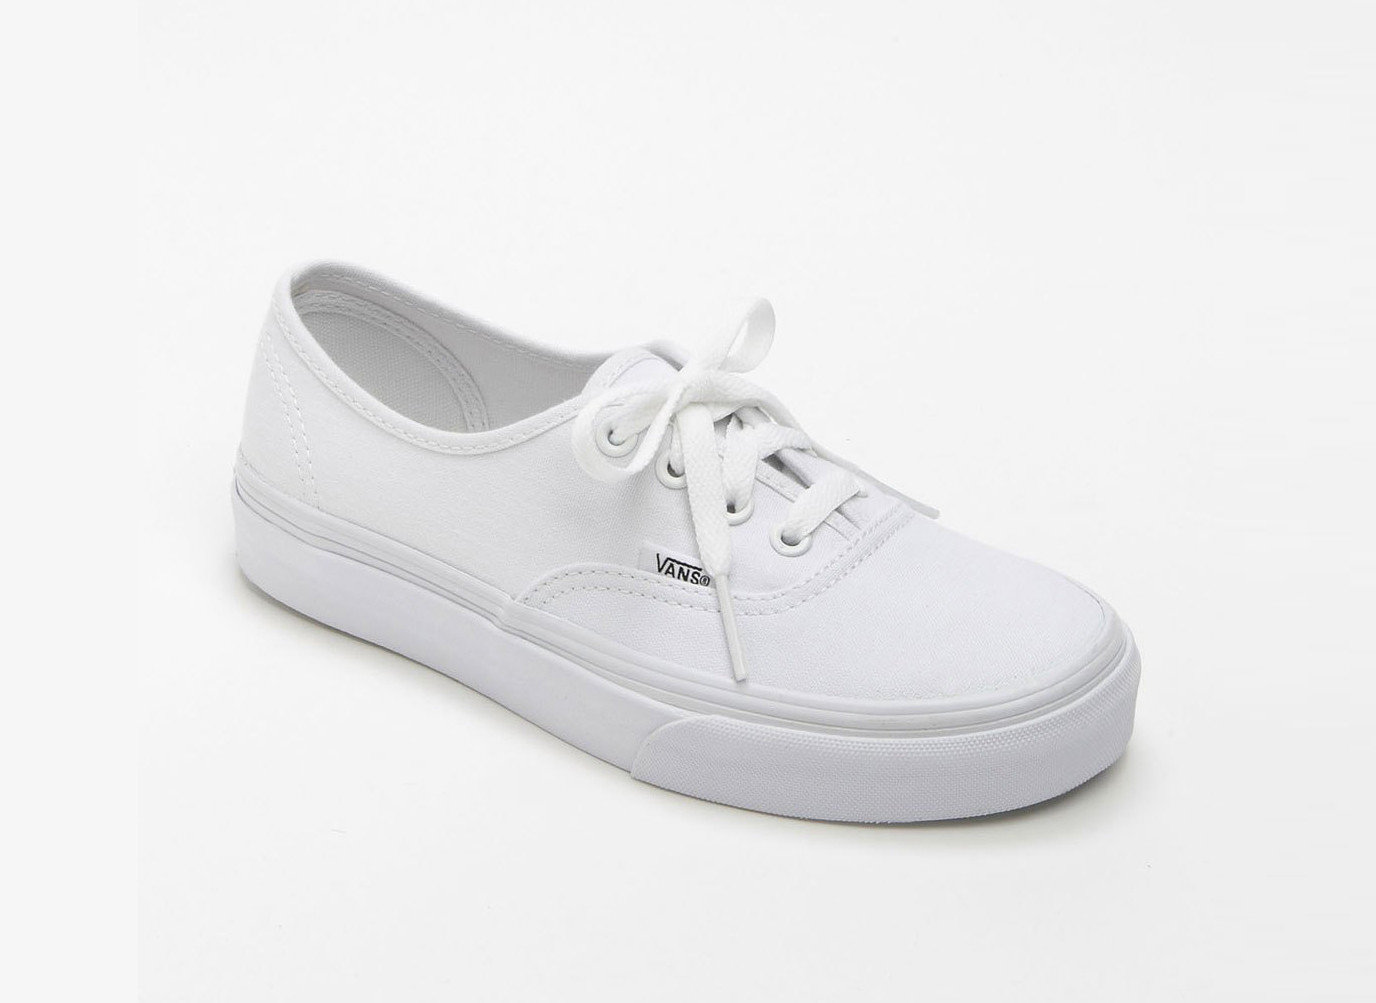 21 BEST White Sneakers for Women That Go With Everything ...